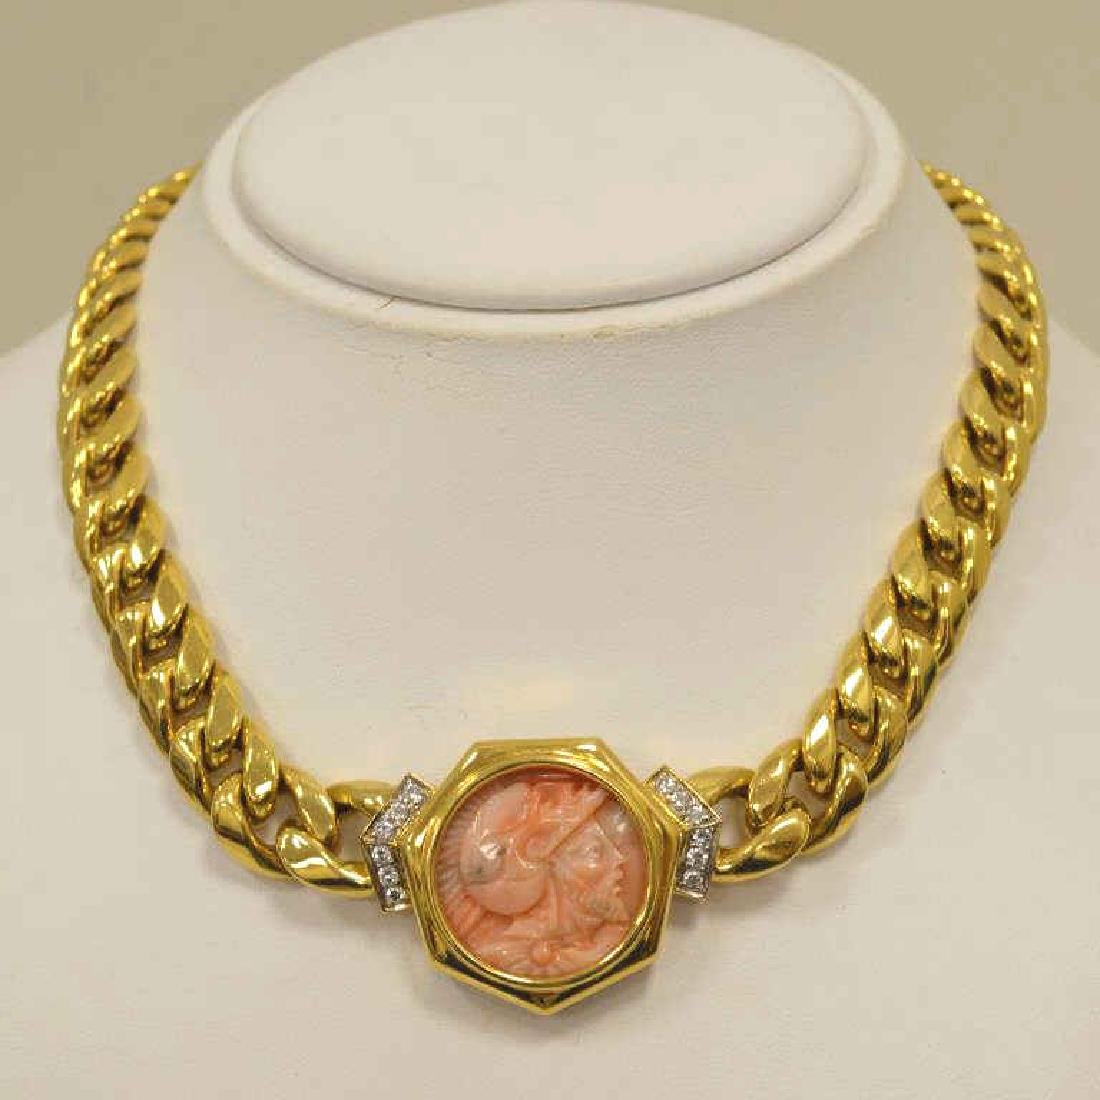 18kt yellow gold carved cameo collar necklace